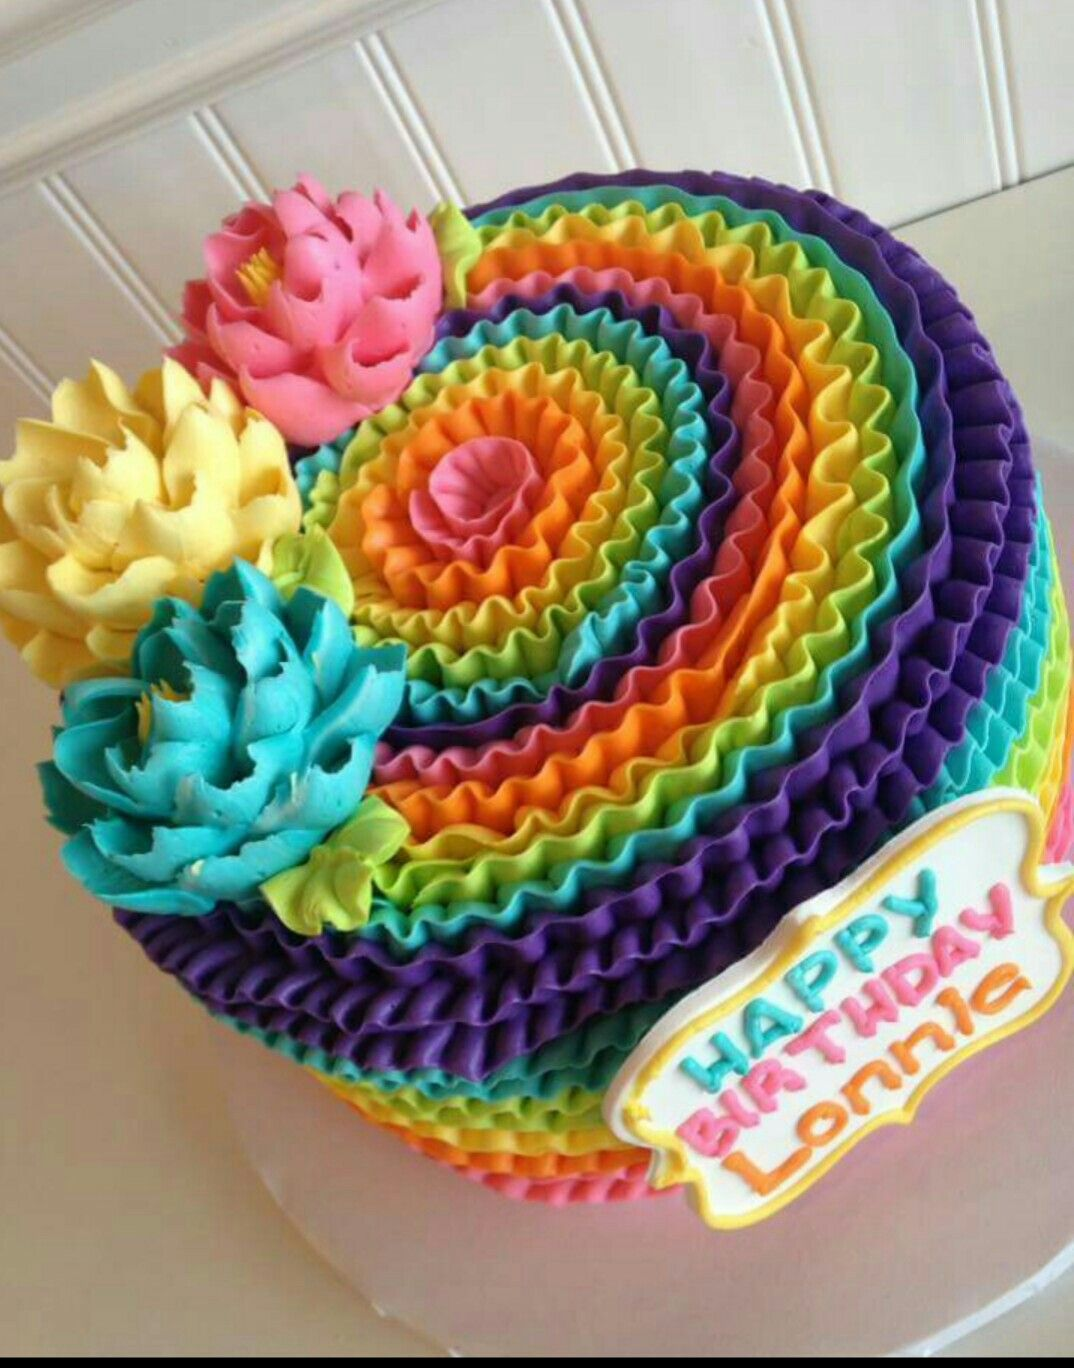 White flower cake shoppe colorful tie dye rainbow cakes white flower cake shoppe dhlflorist Image collections